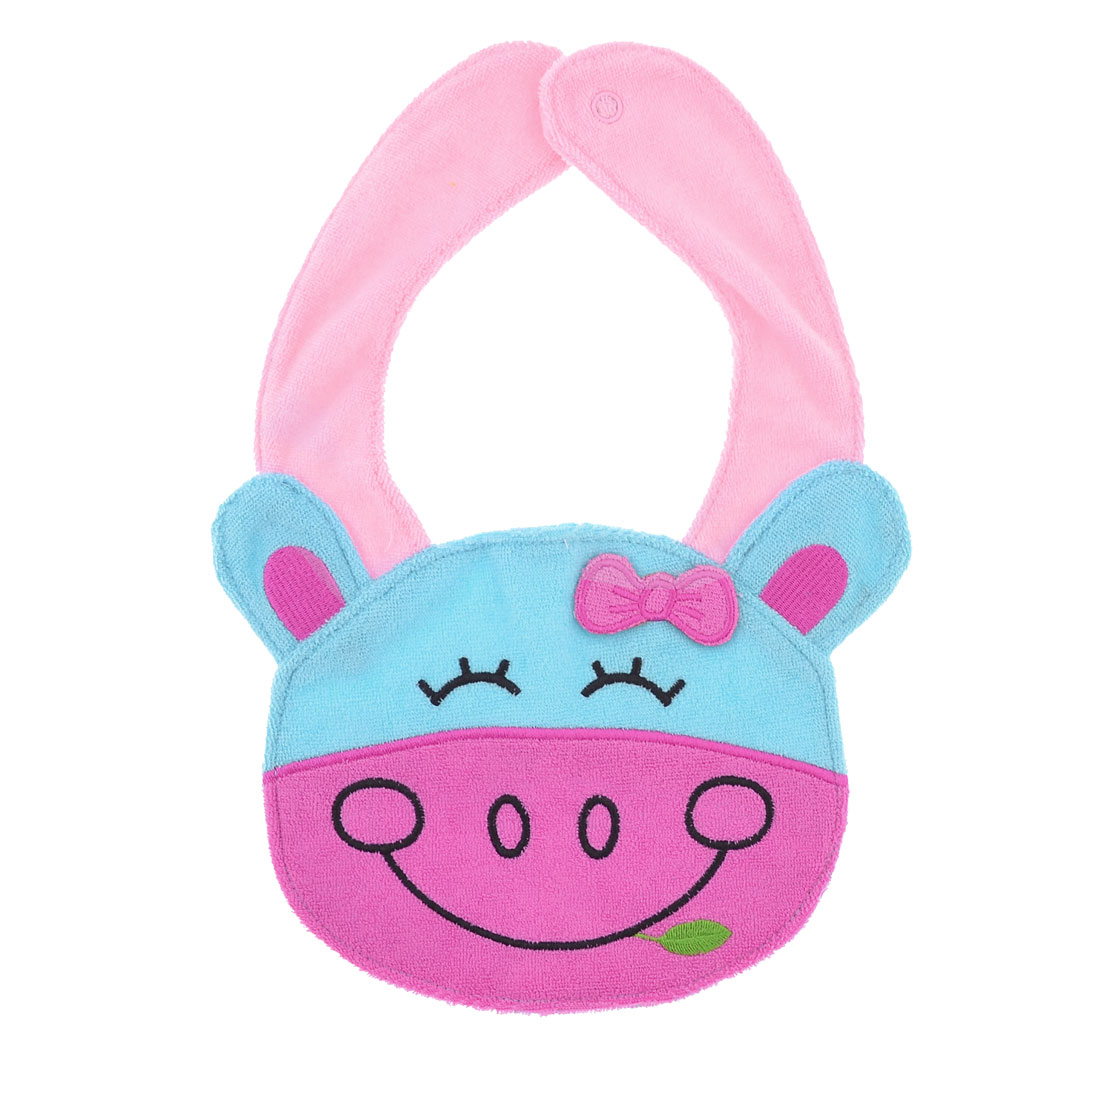 Infant Toddler Pink Blue Pig Design Terry Lunch Bib Tower